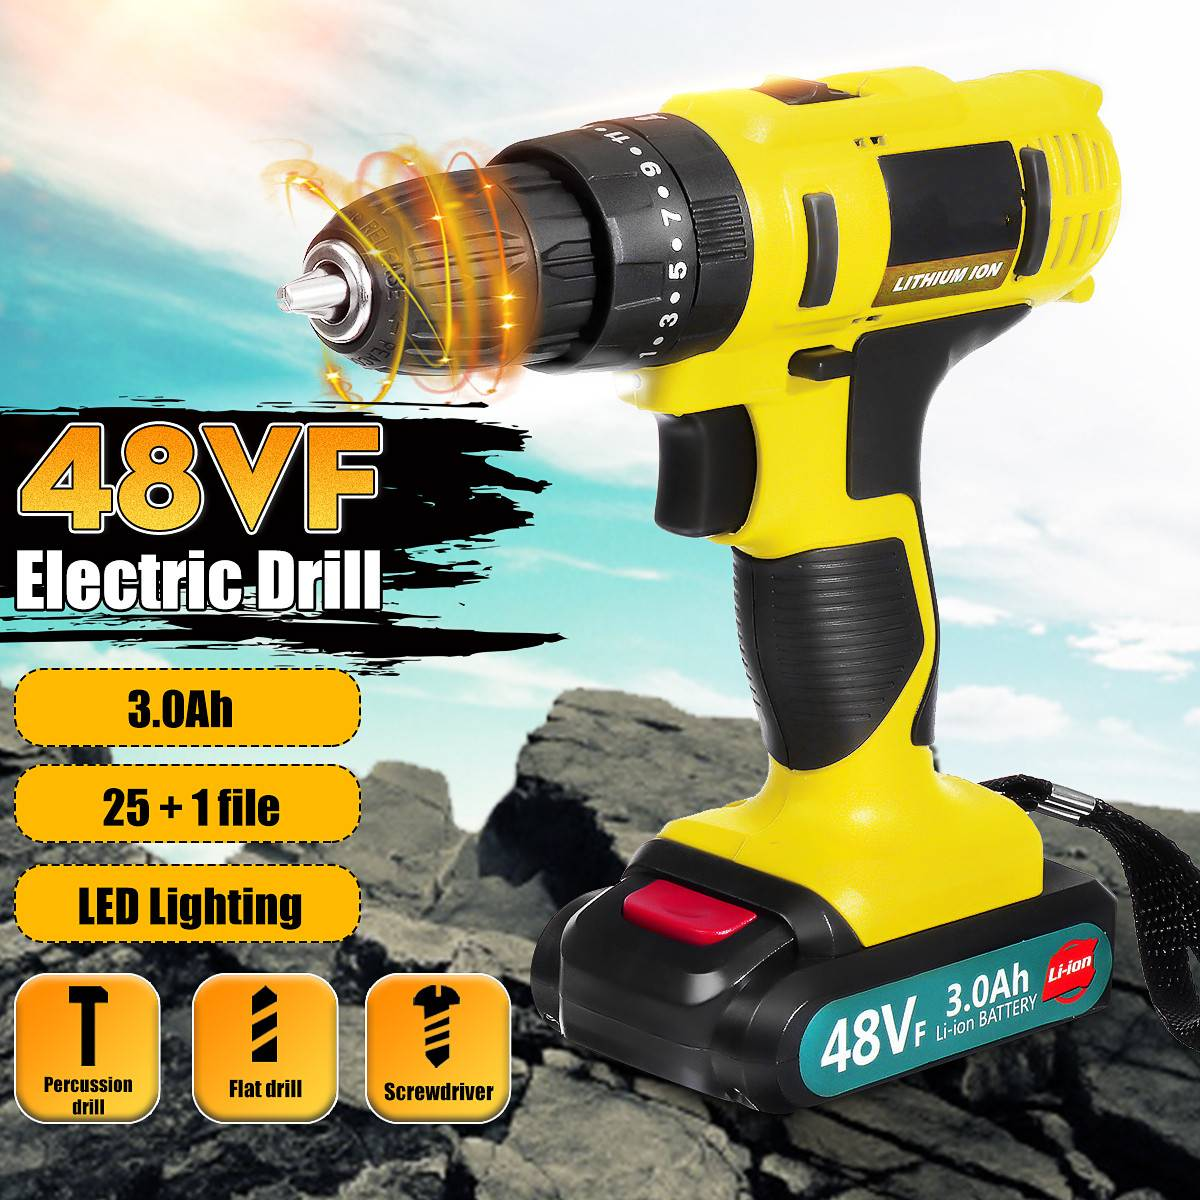 48VF 21V Electric Screwdriver 3 Speed Cordless Impact Drill Power Tool With Dual 3000mAh Rechargeable Li-ion Battery Power Tool